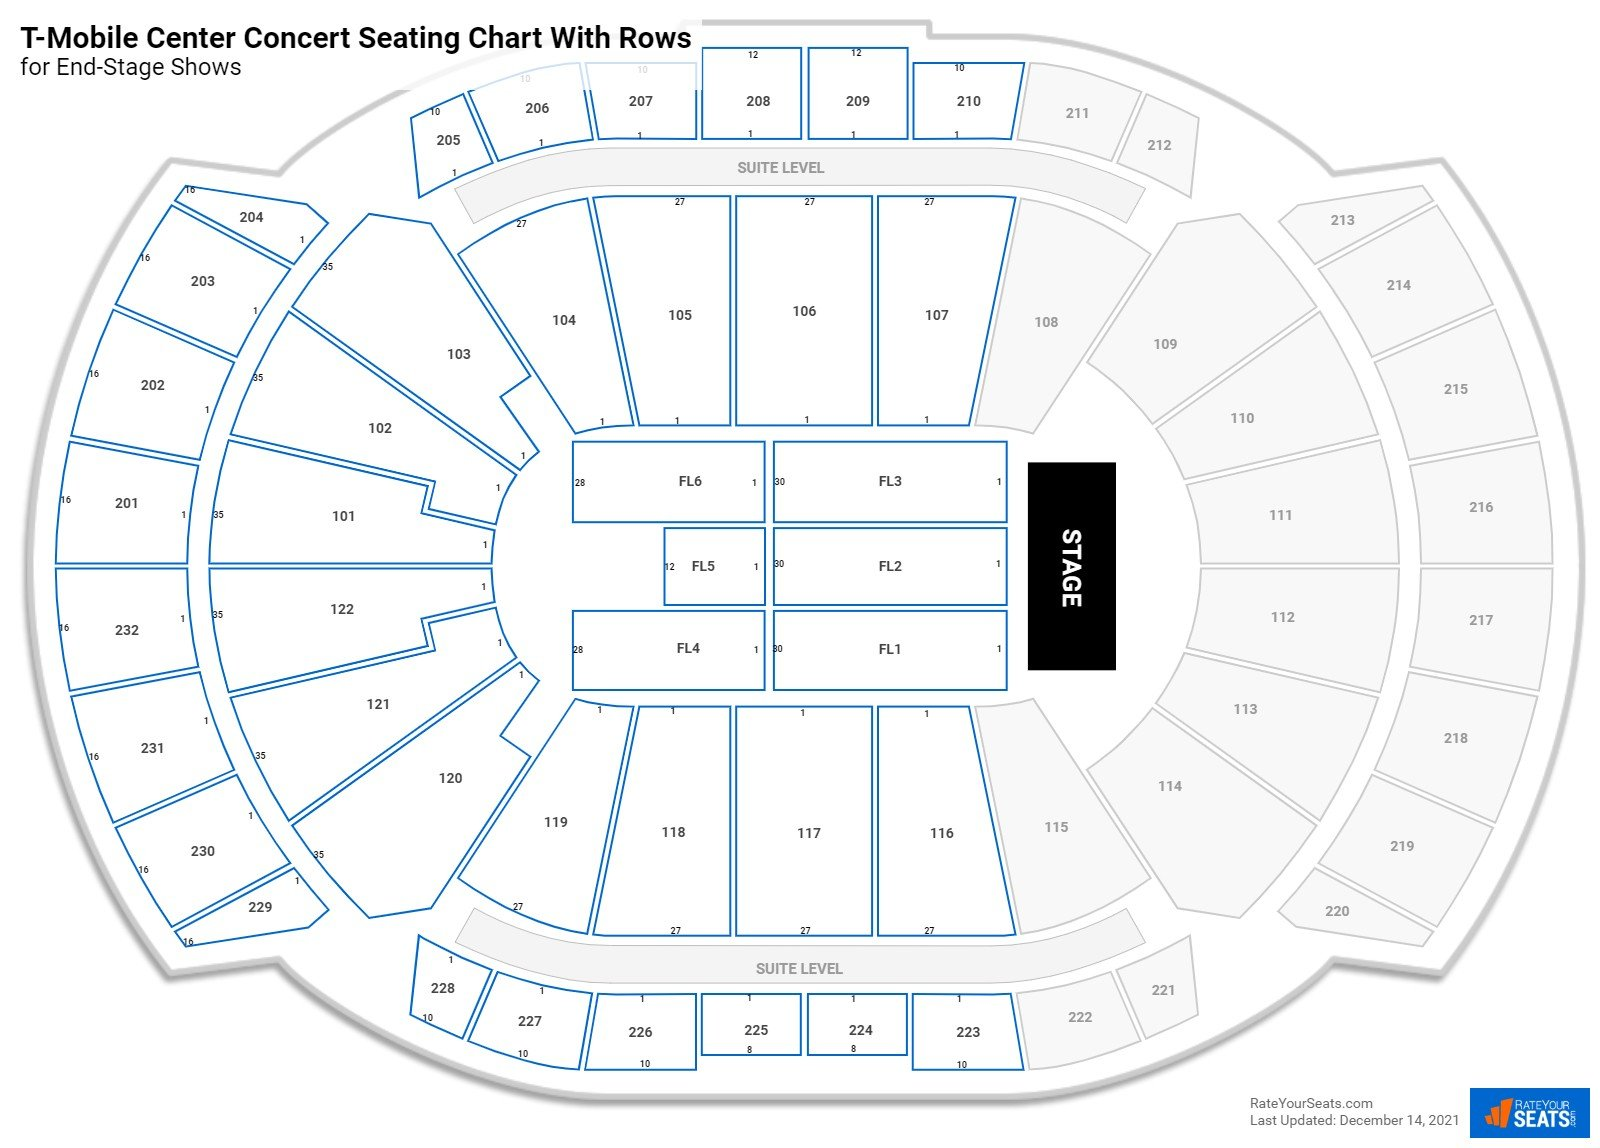 T-Mobile Center seating chart with rows concert